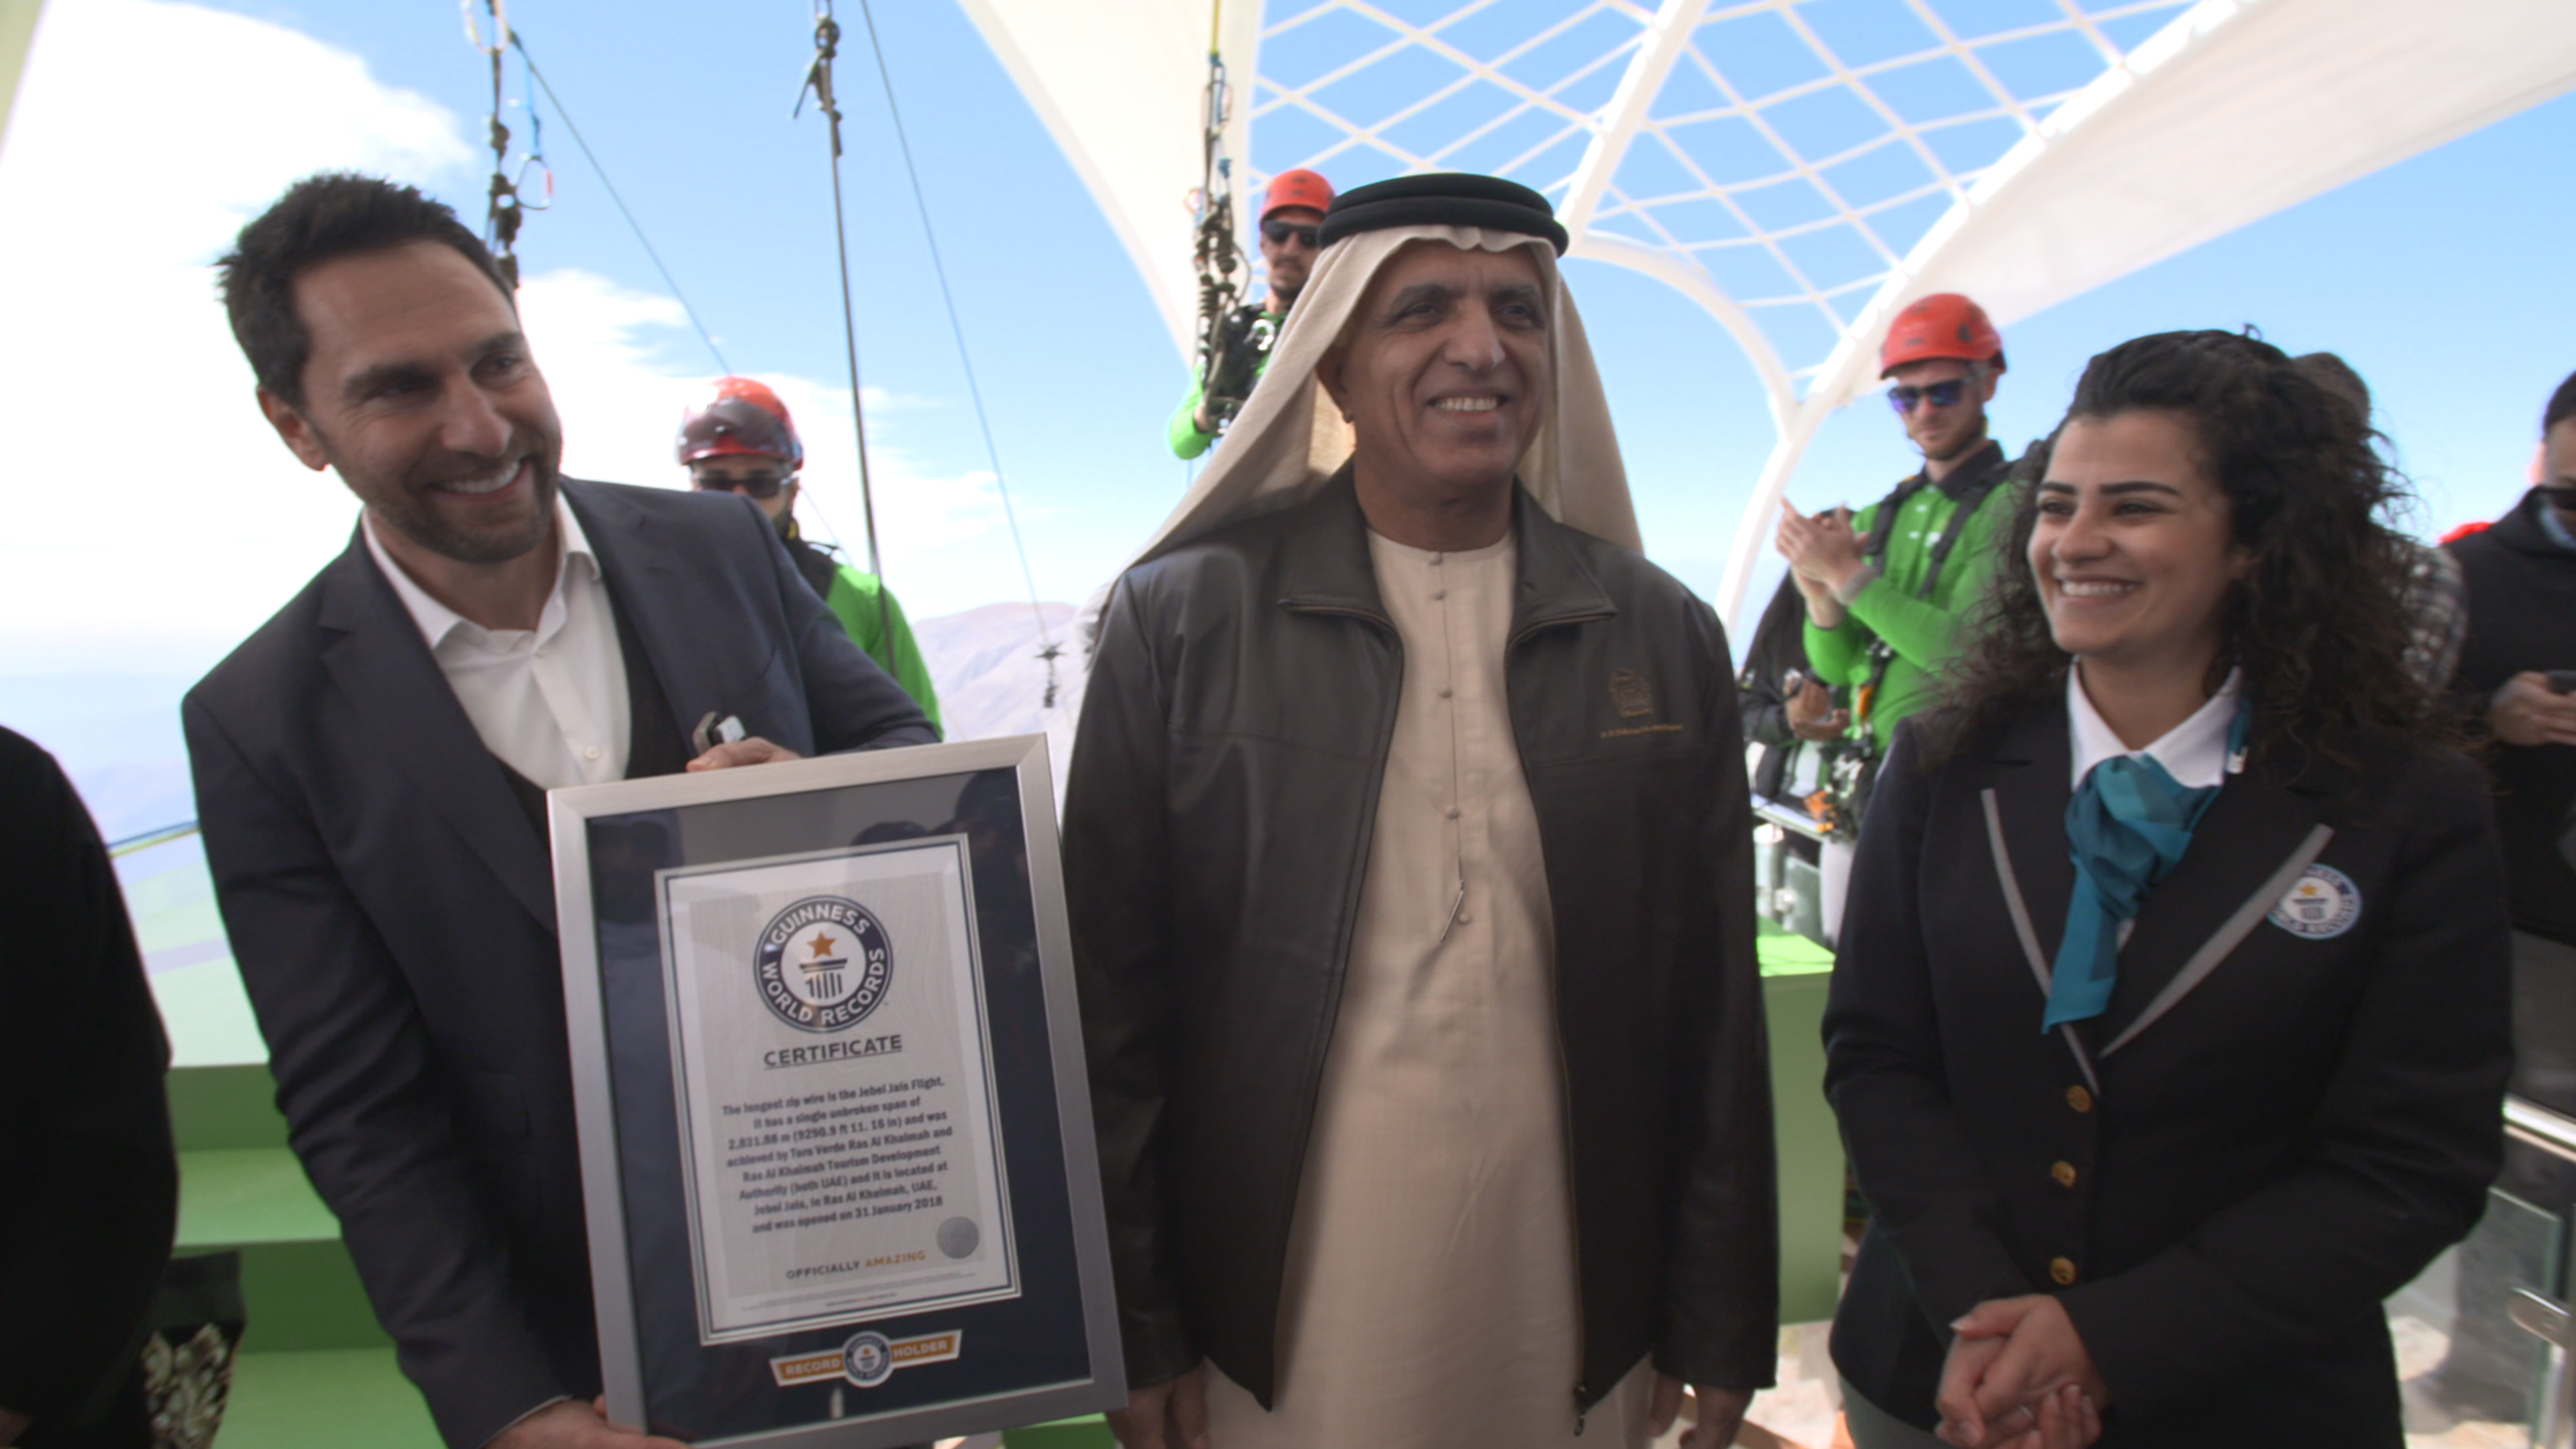 UAE claims world's longest zipline